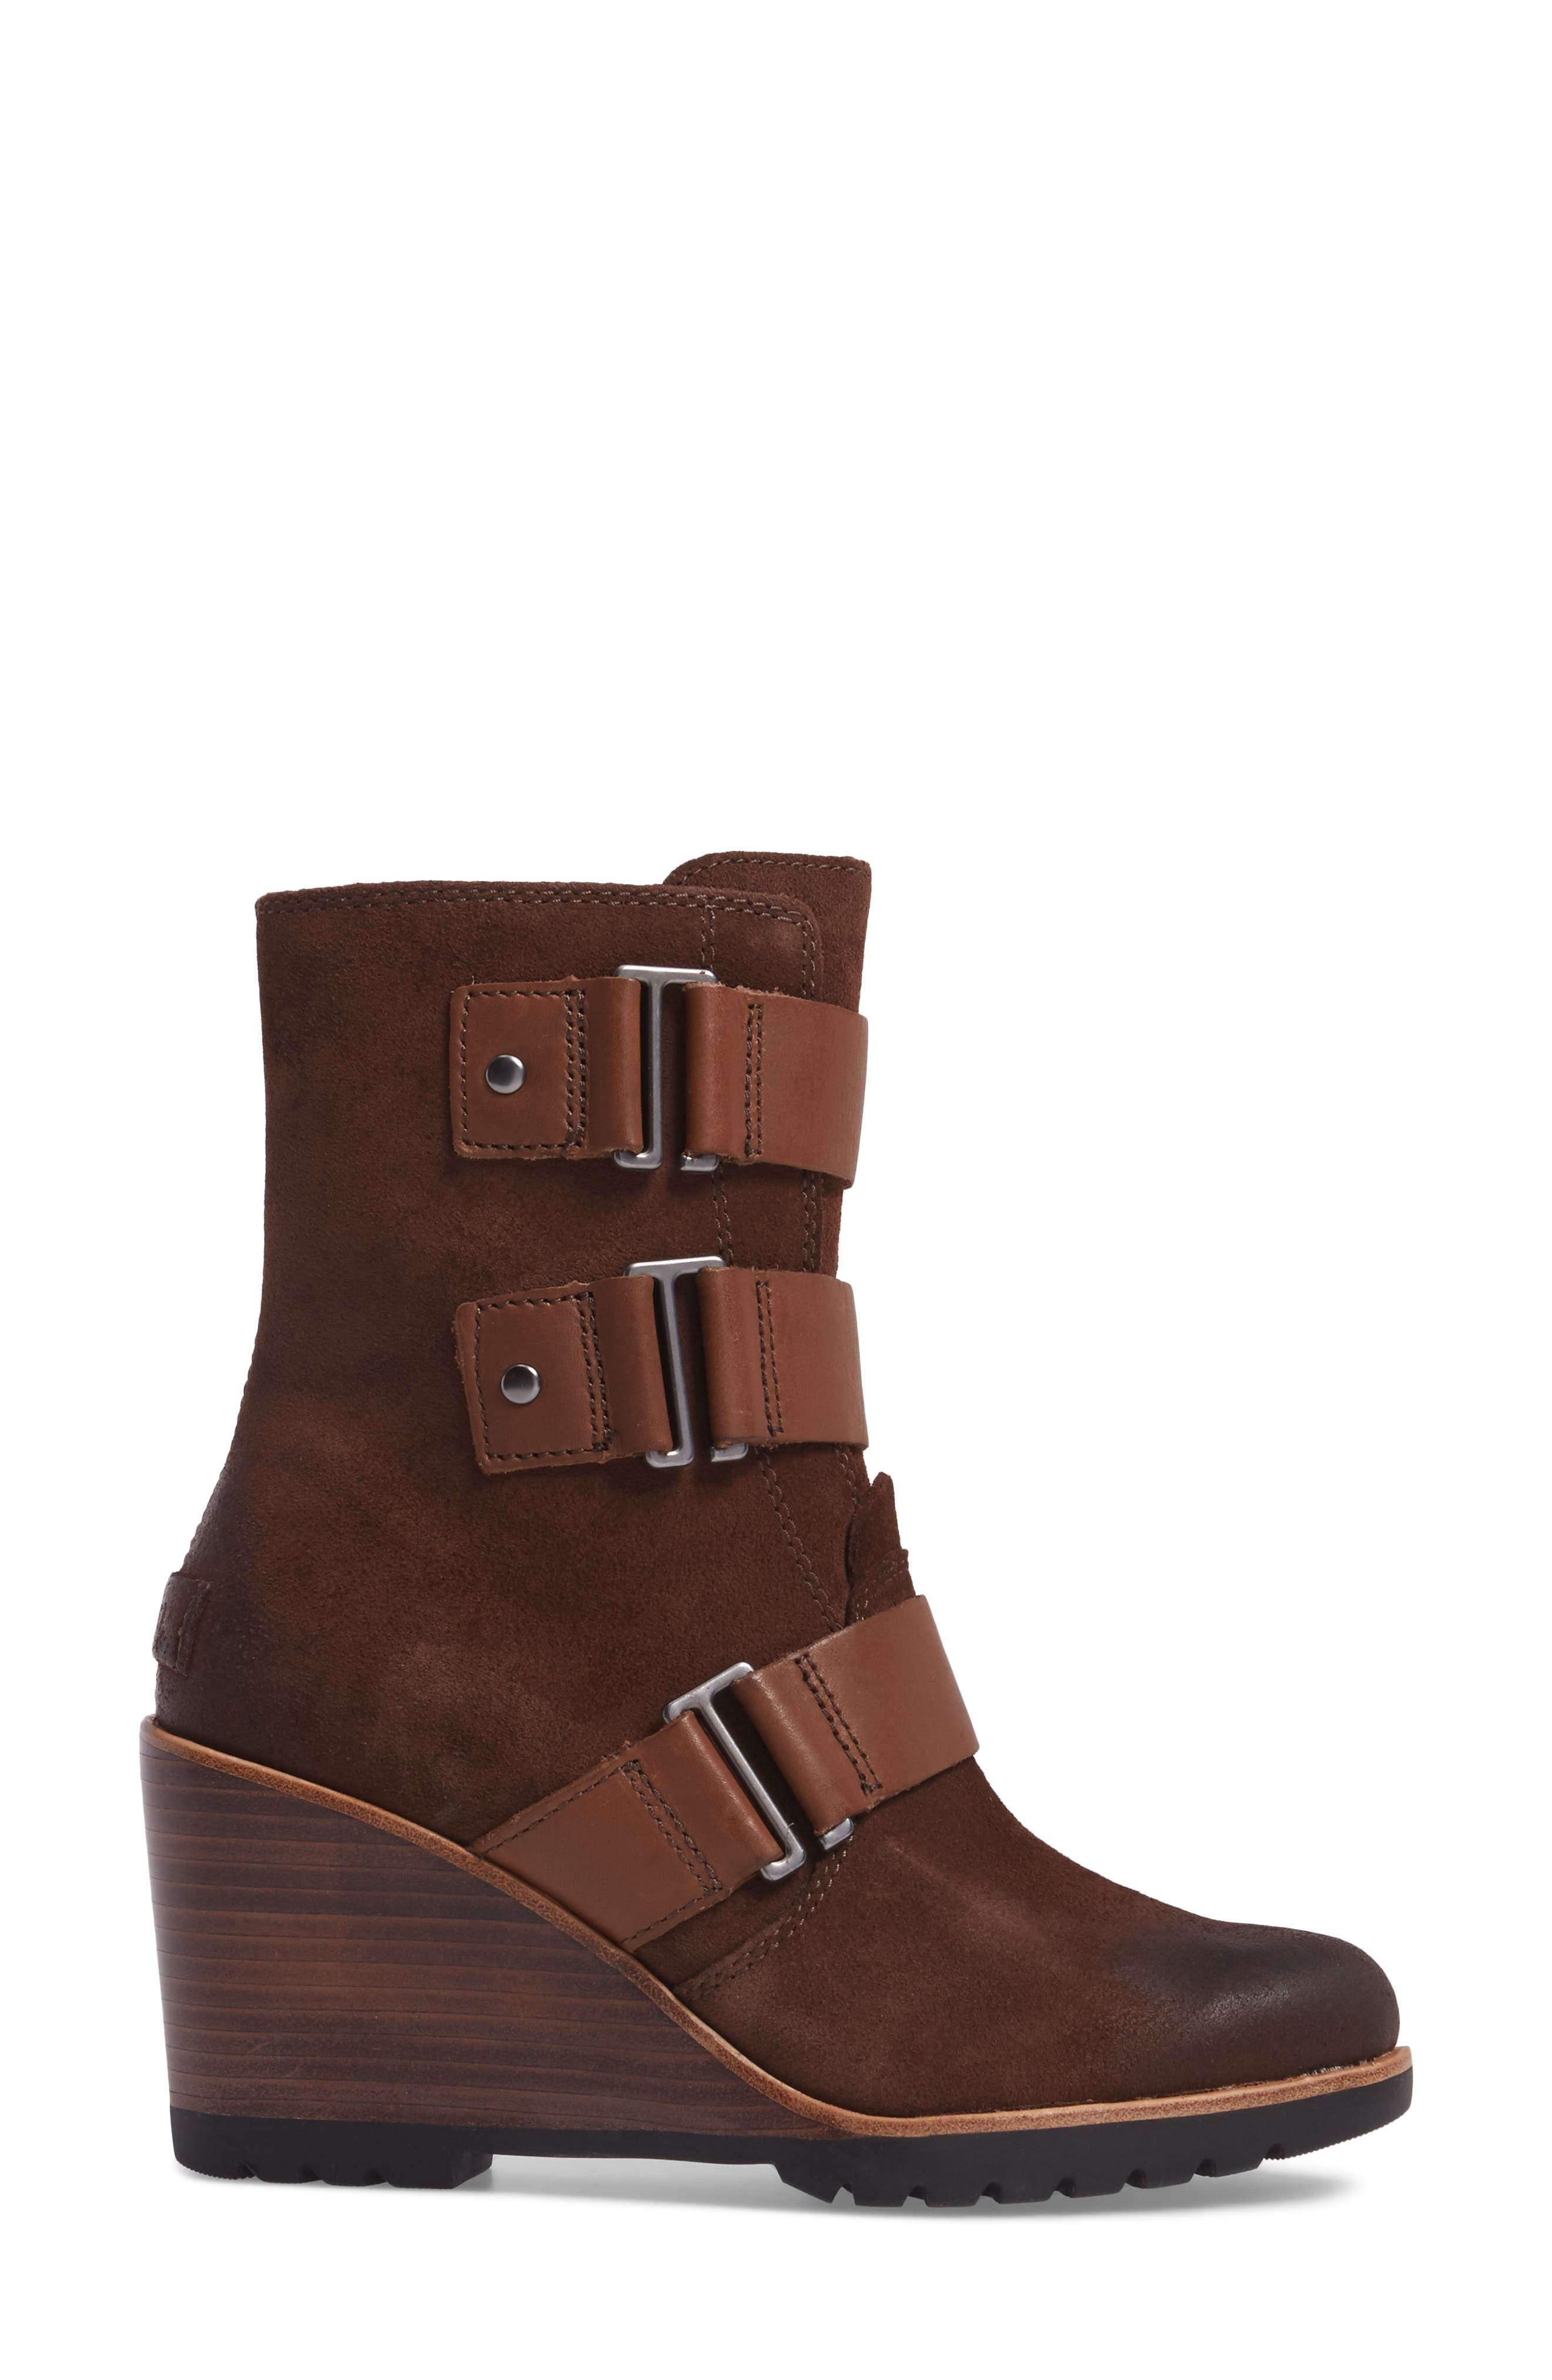 After Hours Waterproof Bootie,                             Alternate thumbnail 8, color,